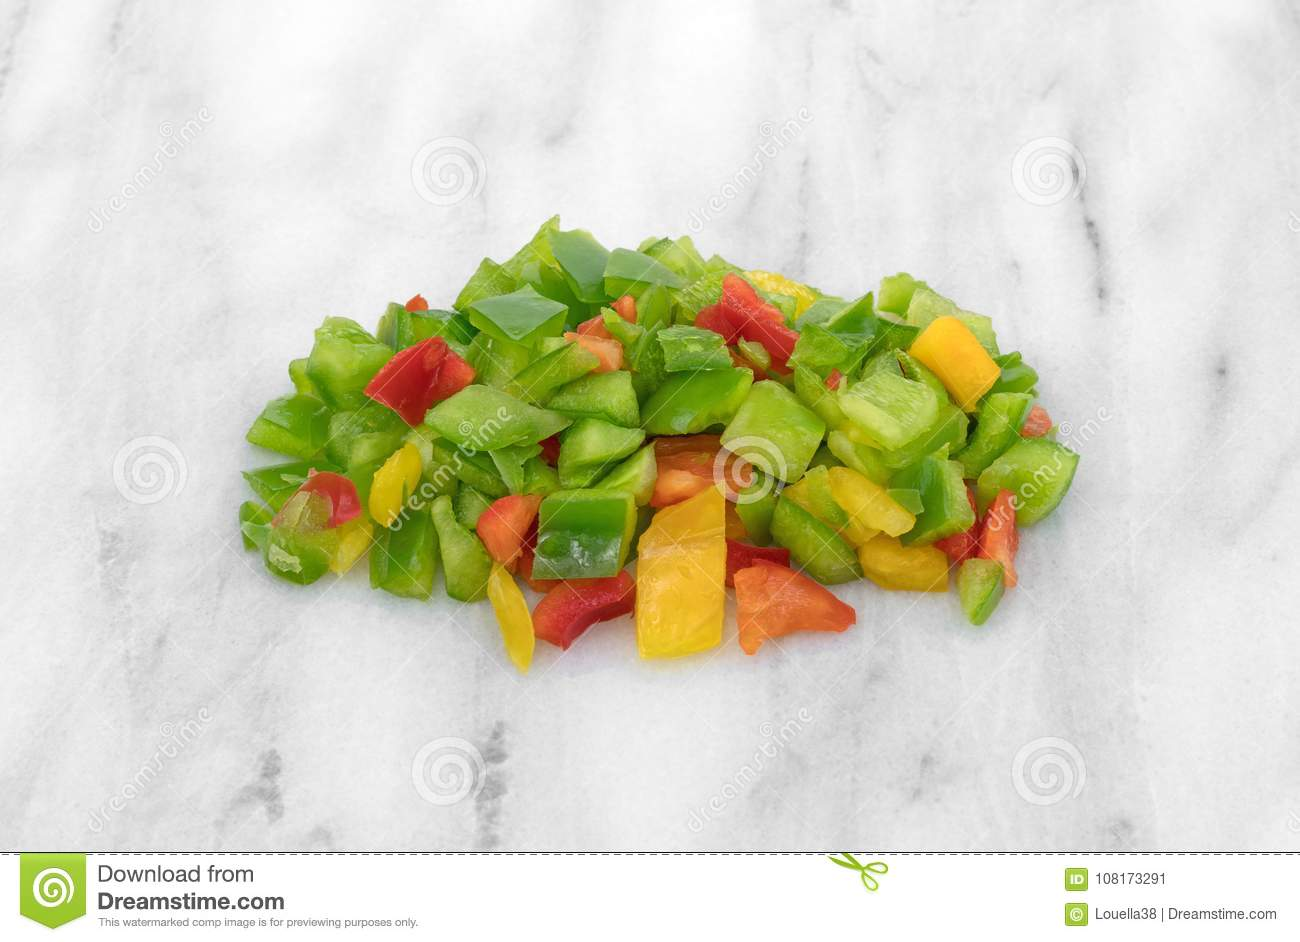 Small Marble Cutting Board Chopped Bell Peppers On A Marble Cutting Board Stock Image Image